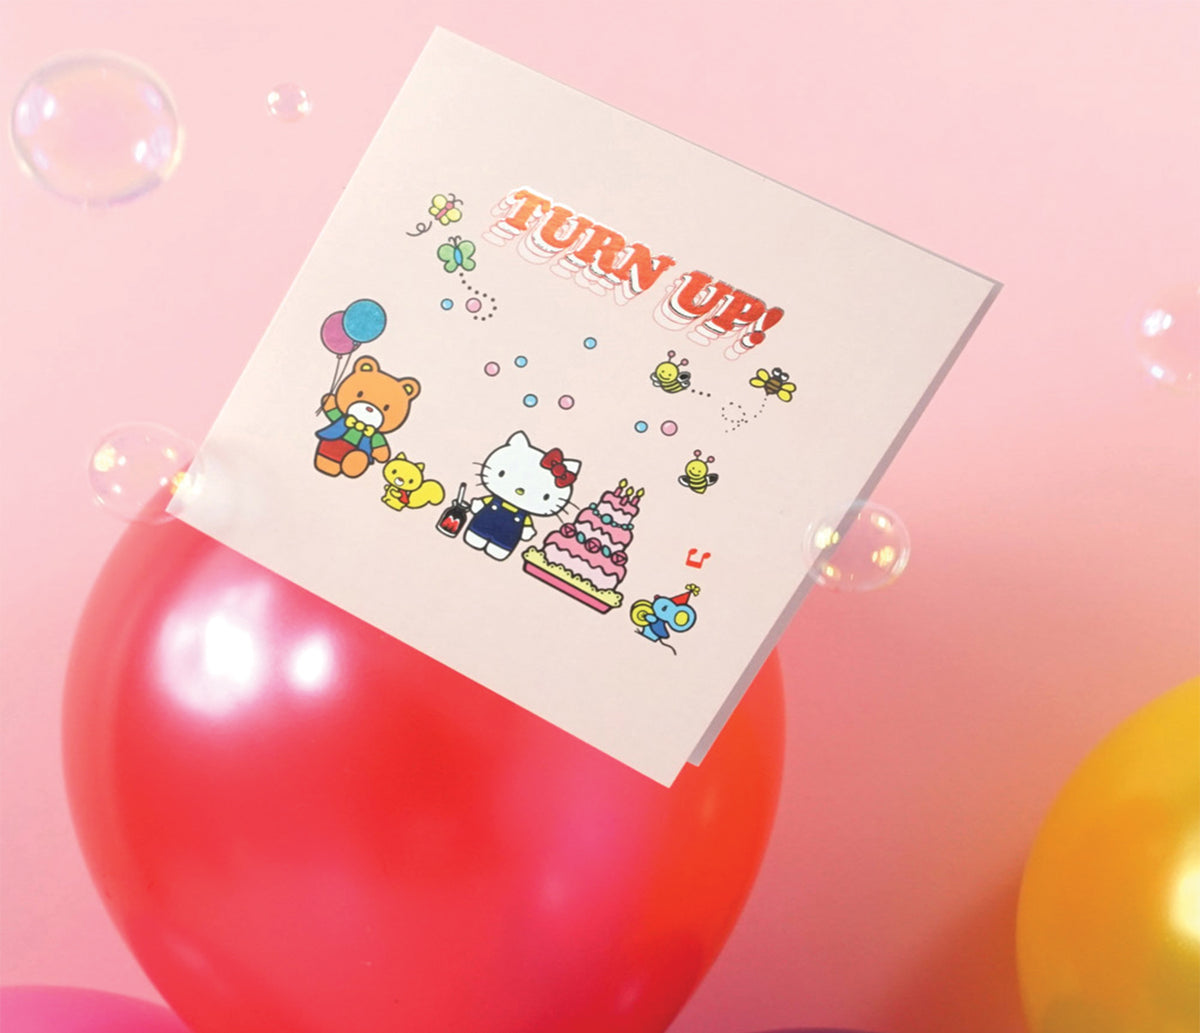 Jolly Awesome x Hello Kitty Greeting Card: Turn Up